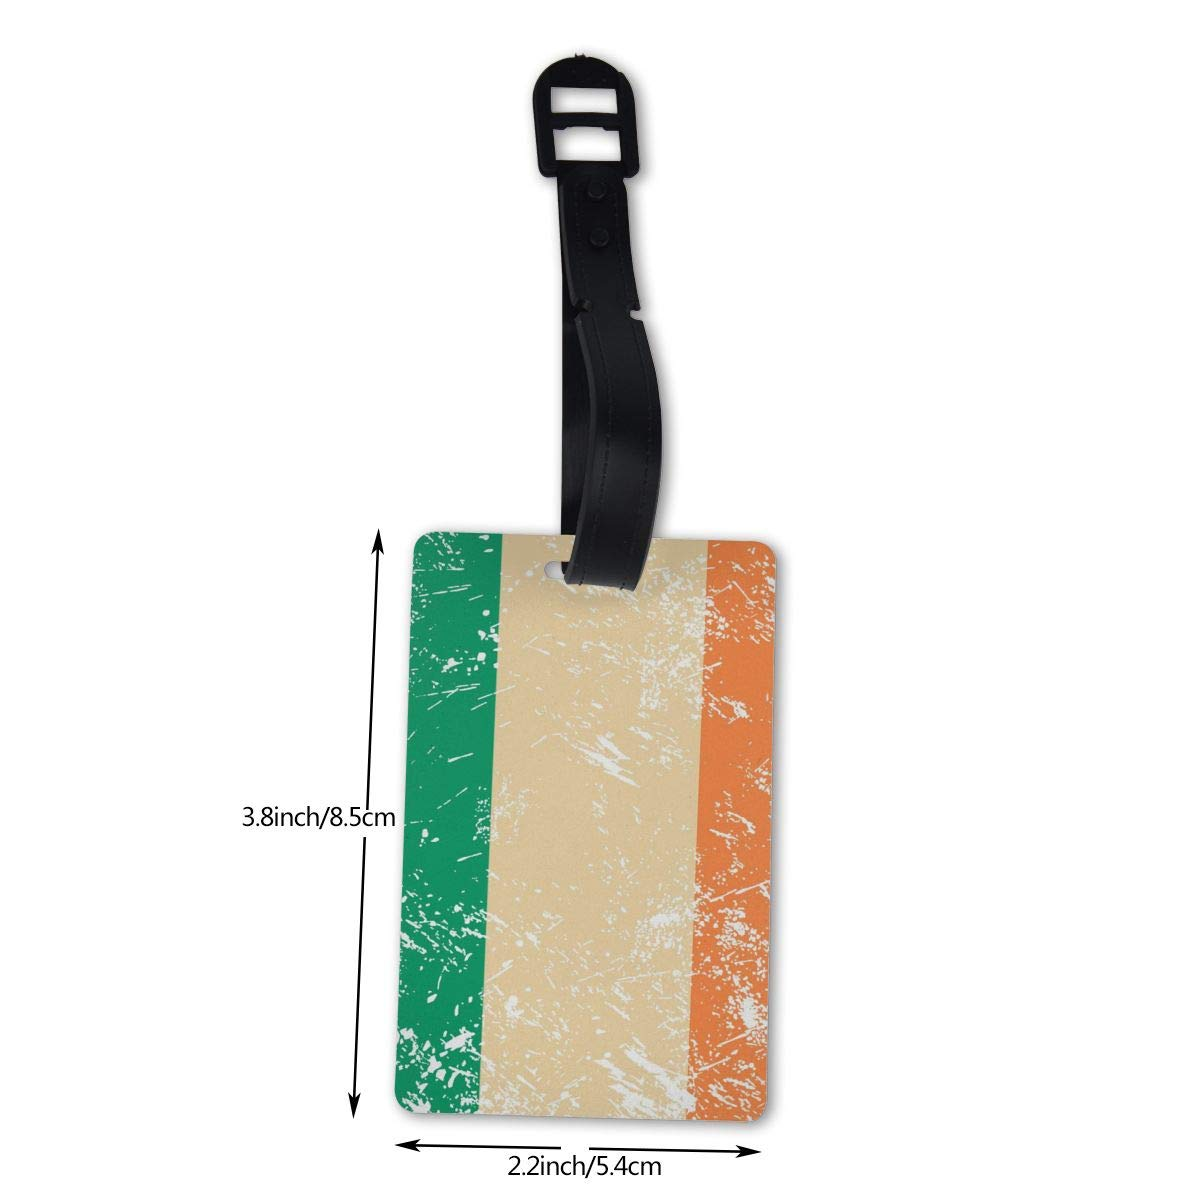 NB UUD Ireland Retro Flag Travel Luggage Tag Cool Employees Card Luggage Tag Holders Travel ID Identification Labels for Baggage Suitcases Bags